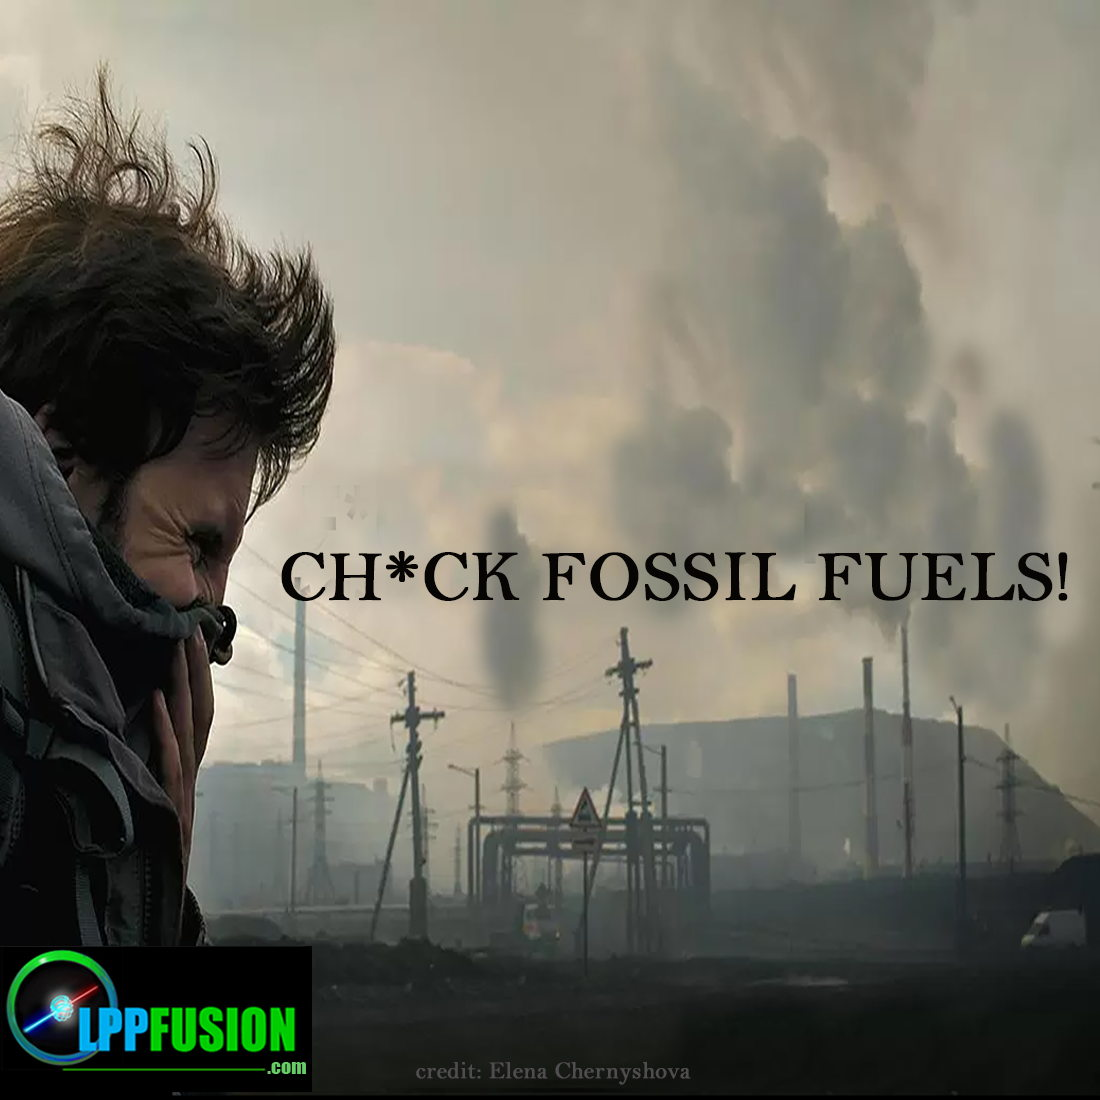 Chuck fossil fuels.png